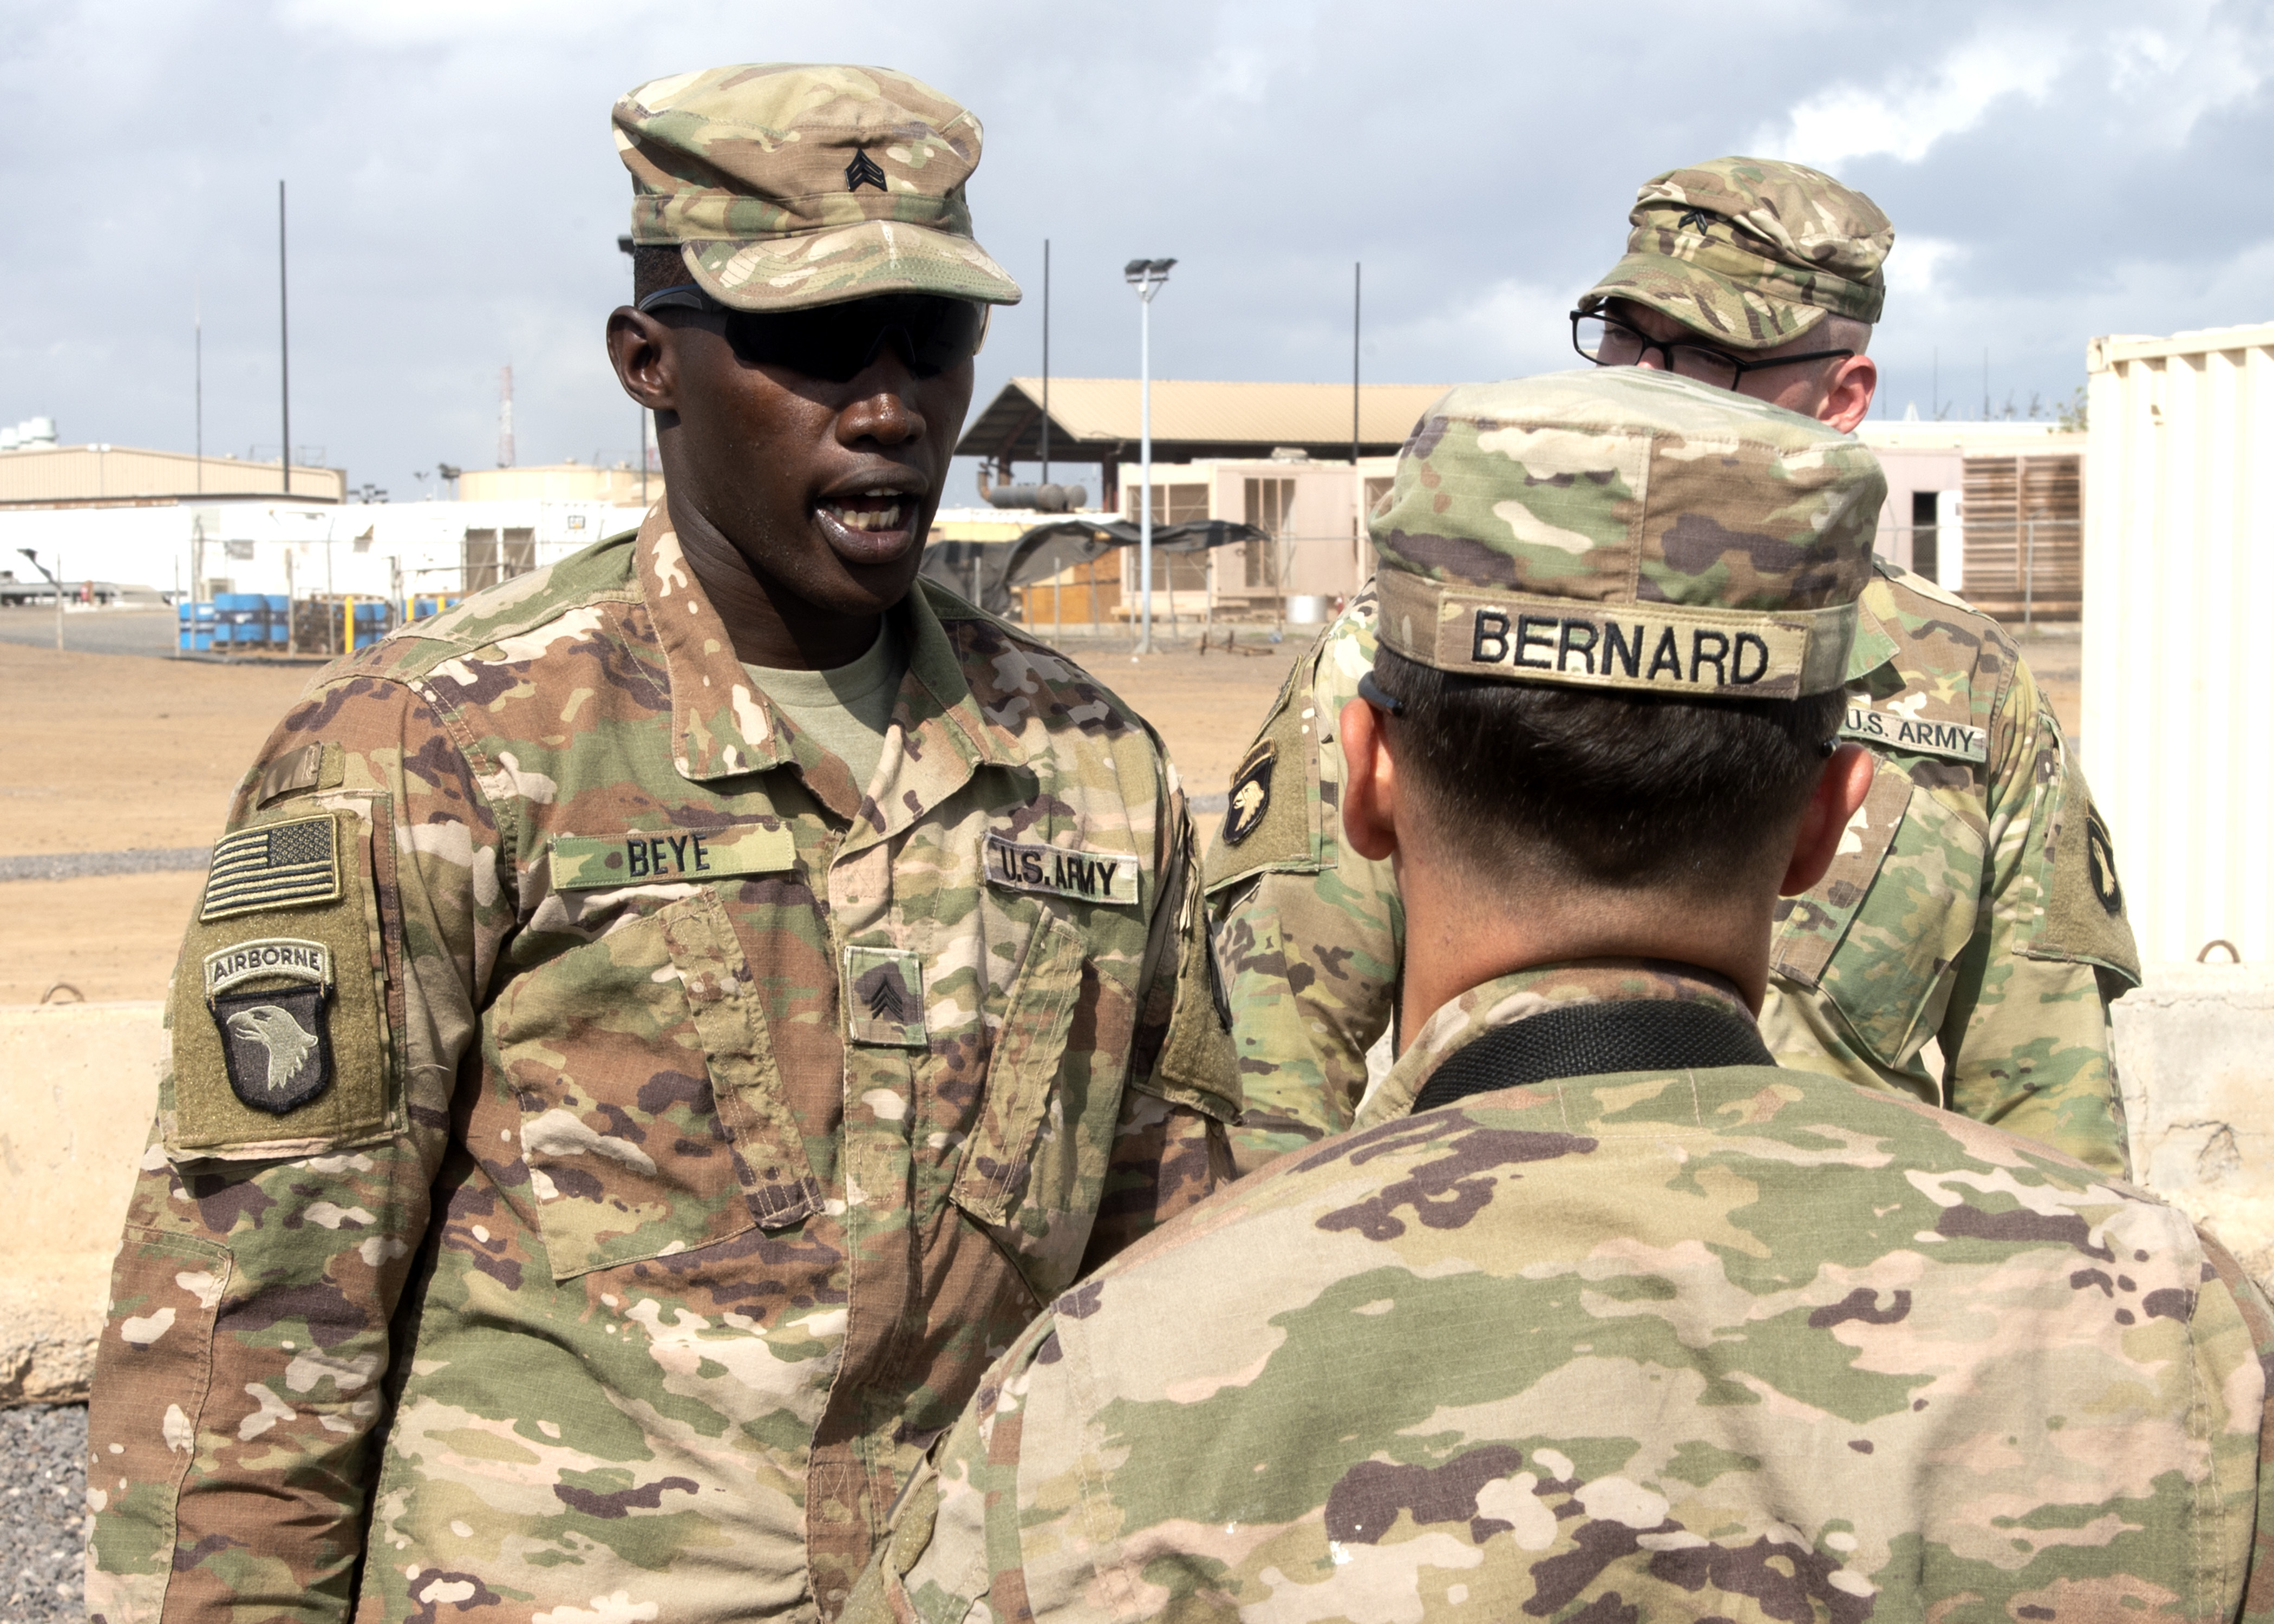 U.S. Army Sgt. Elhadji Beye, Viper Company, 1-26 Infantry, 101st Airborne Division (Air Assault), with the East Africa Response Force (EARF) assigned to Combined Joint Task Force-Horn of Africa, instructs his team of Soldiers at Camp Lemonnier, Djibouti, Feb. 8, 2019. The purpose of the EARF is to rapidly provide tailorable packages of forces to protect American interests on the African continent should any threats arise. (U.S. Navy Photo by Mass Communication Specialist 1st Class Nick Scott)